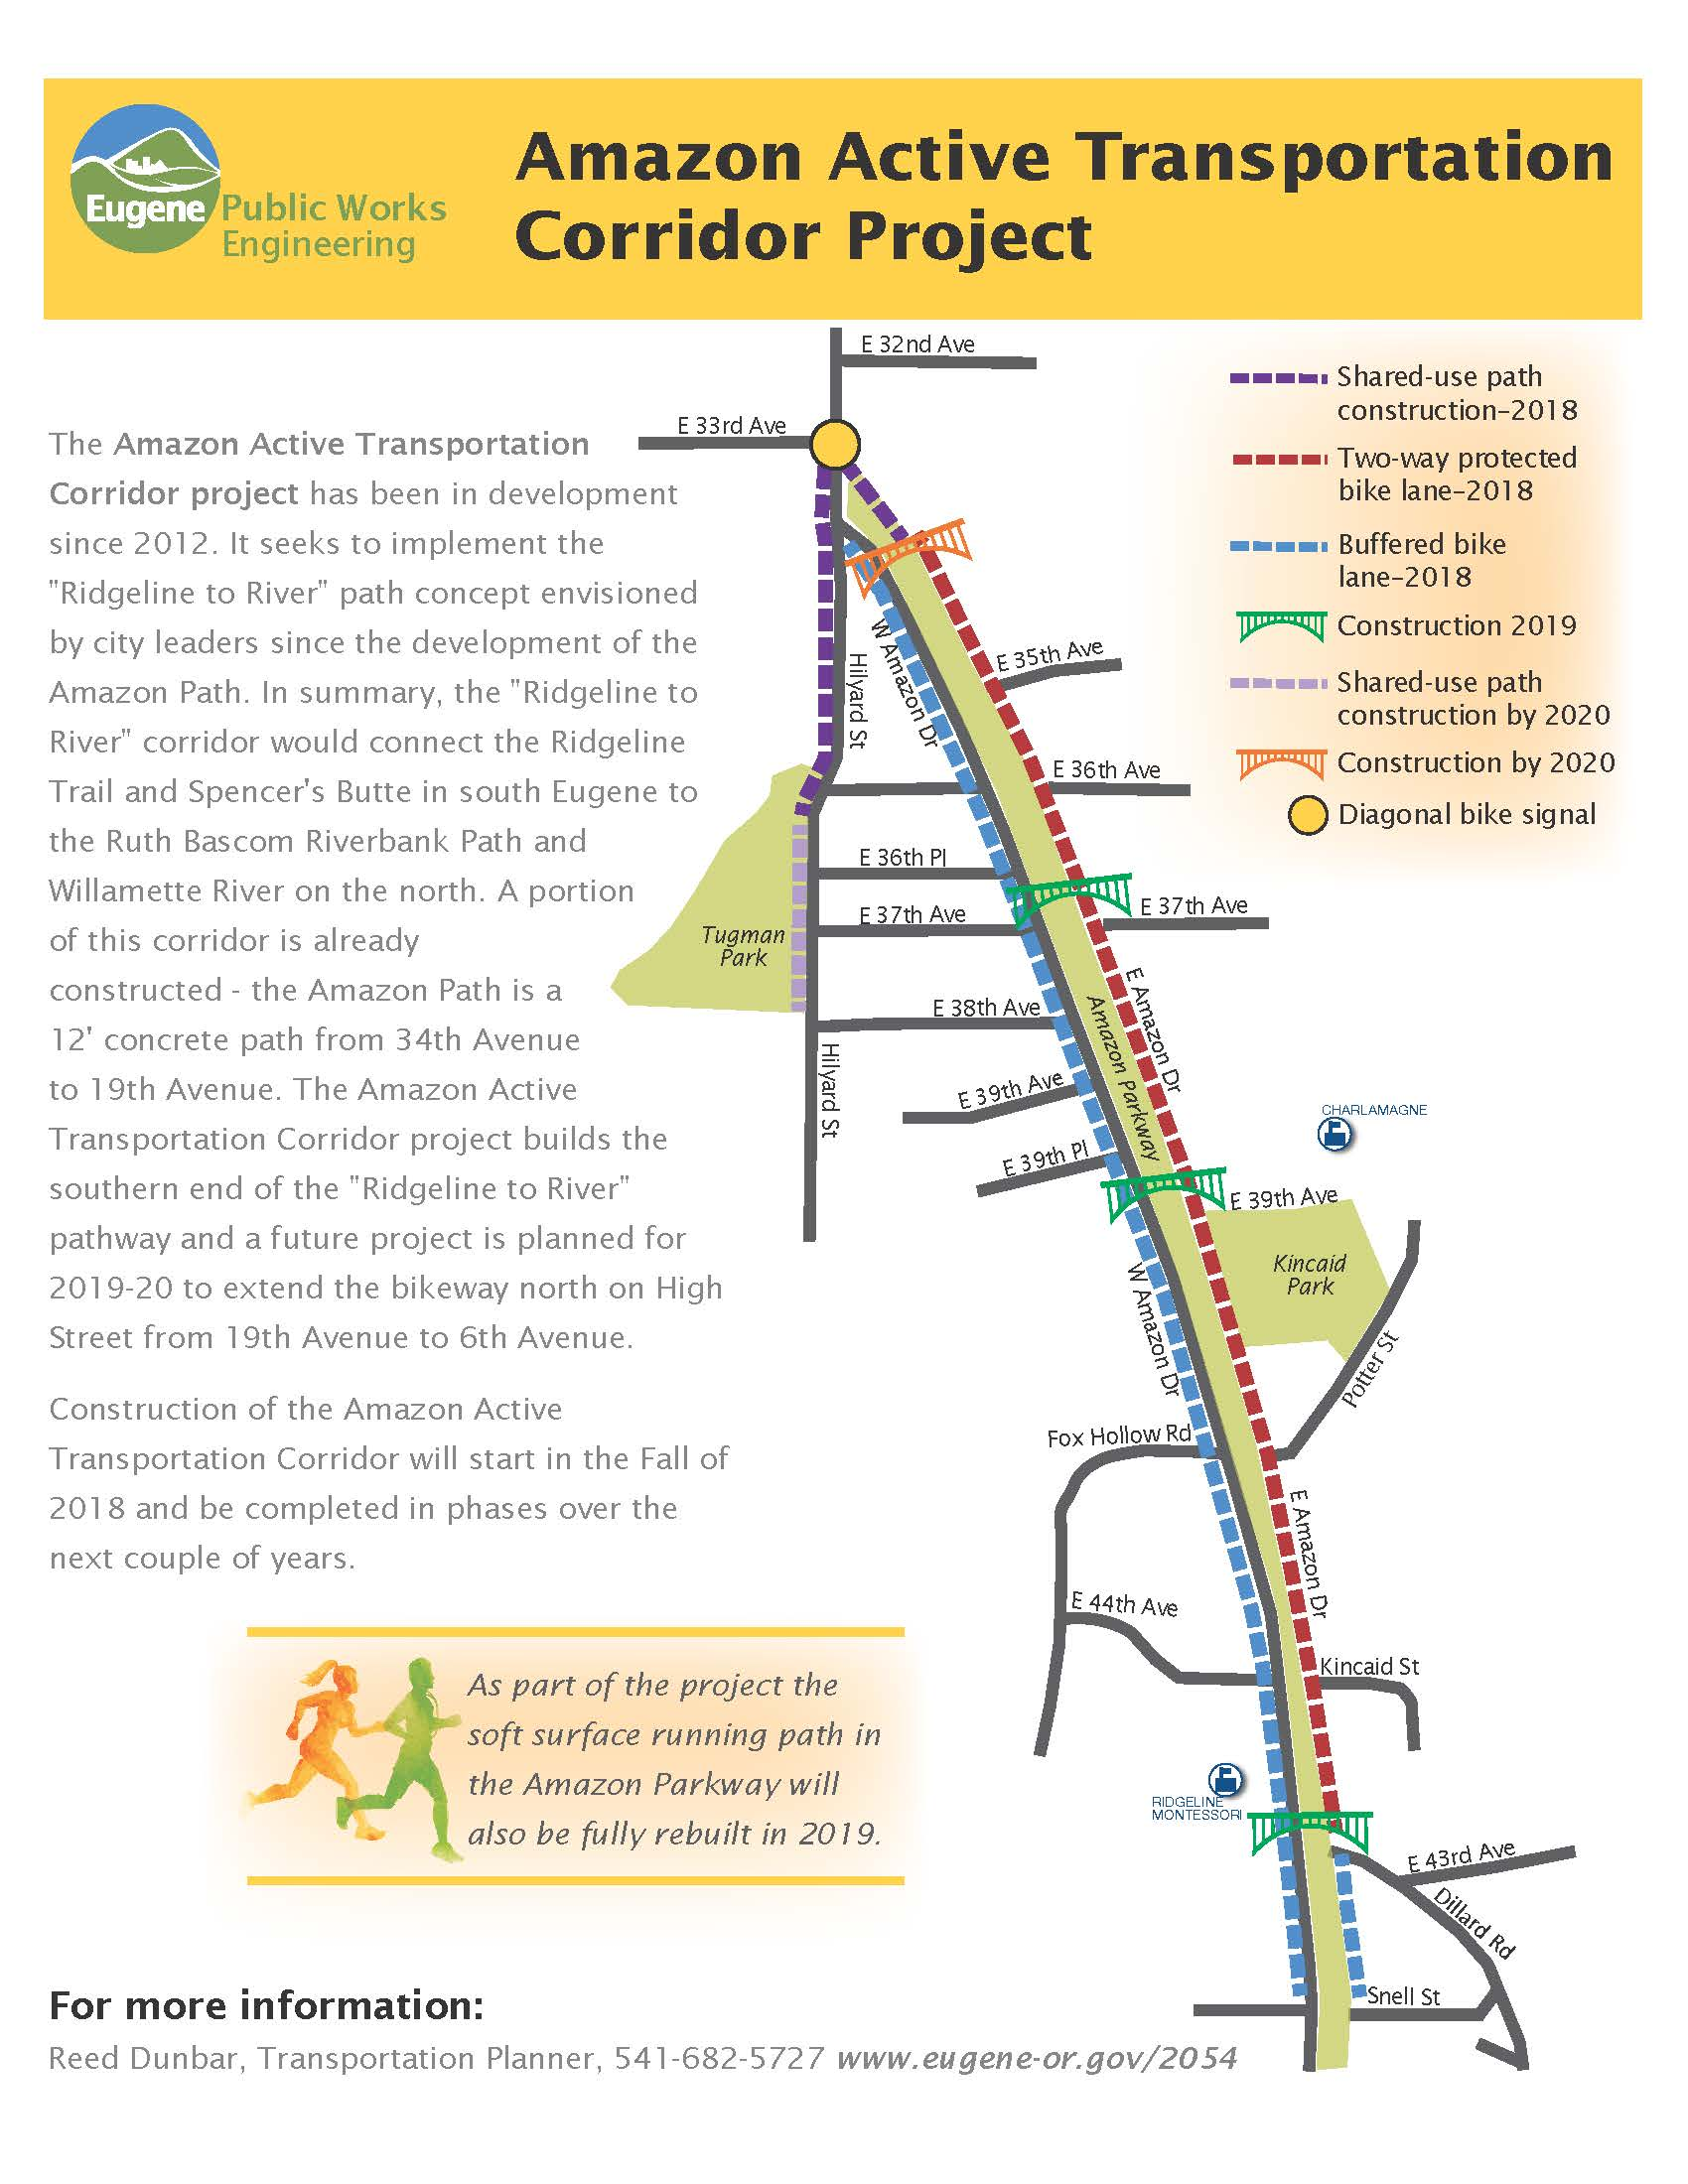 Amazon Active Transportation Corridor Poster